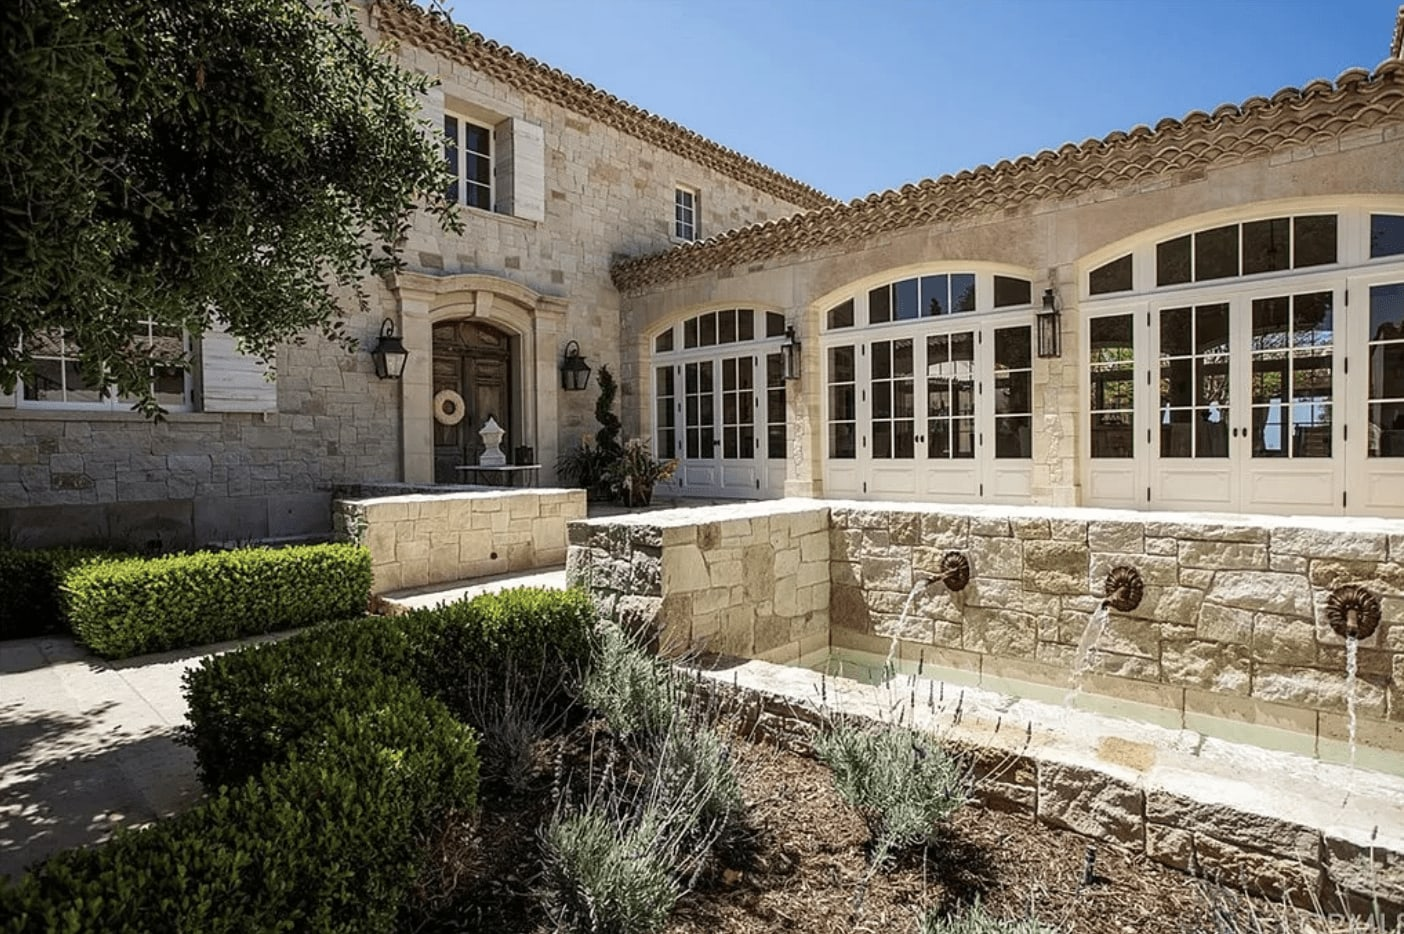 THE BIGGEST HOMES SALES IN IRVINE 2020